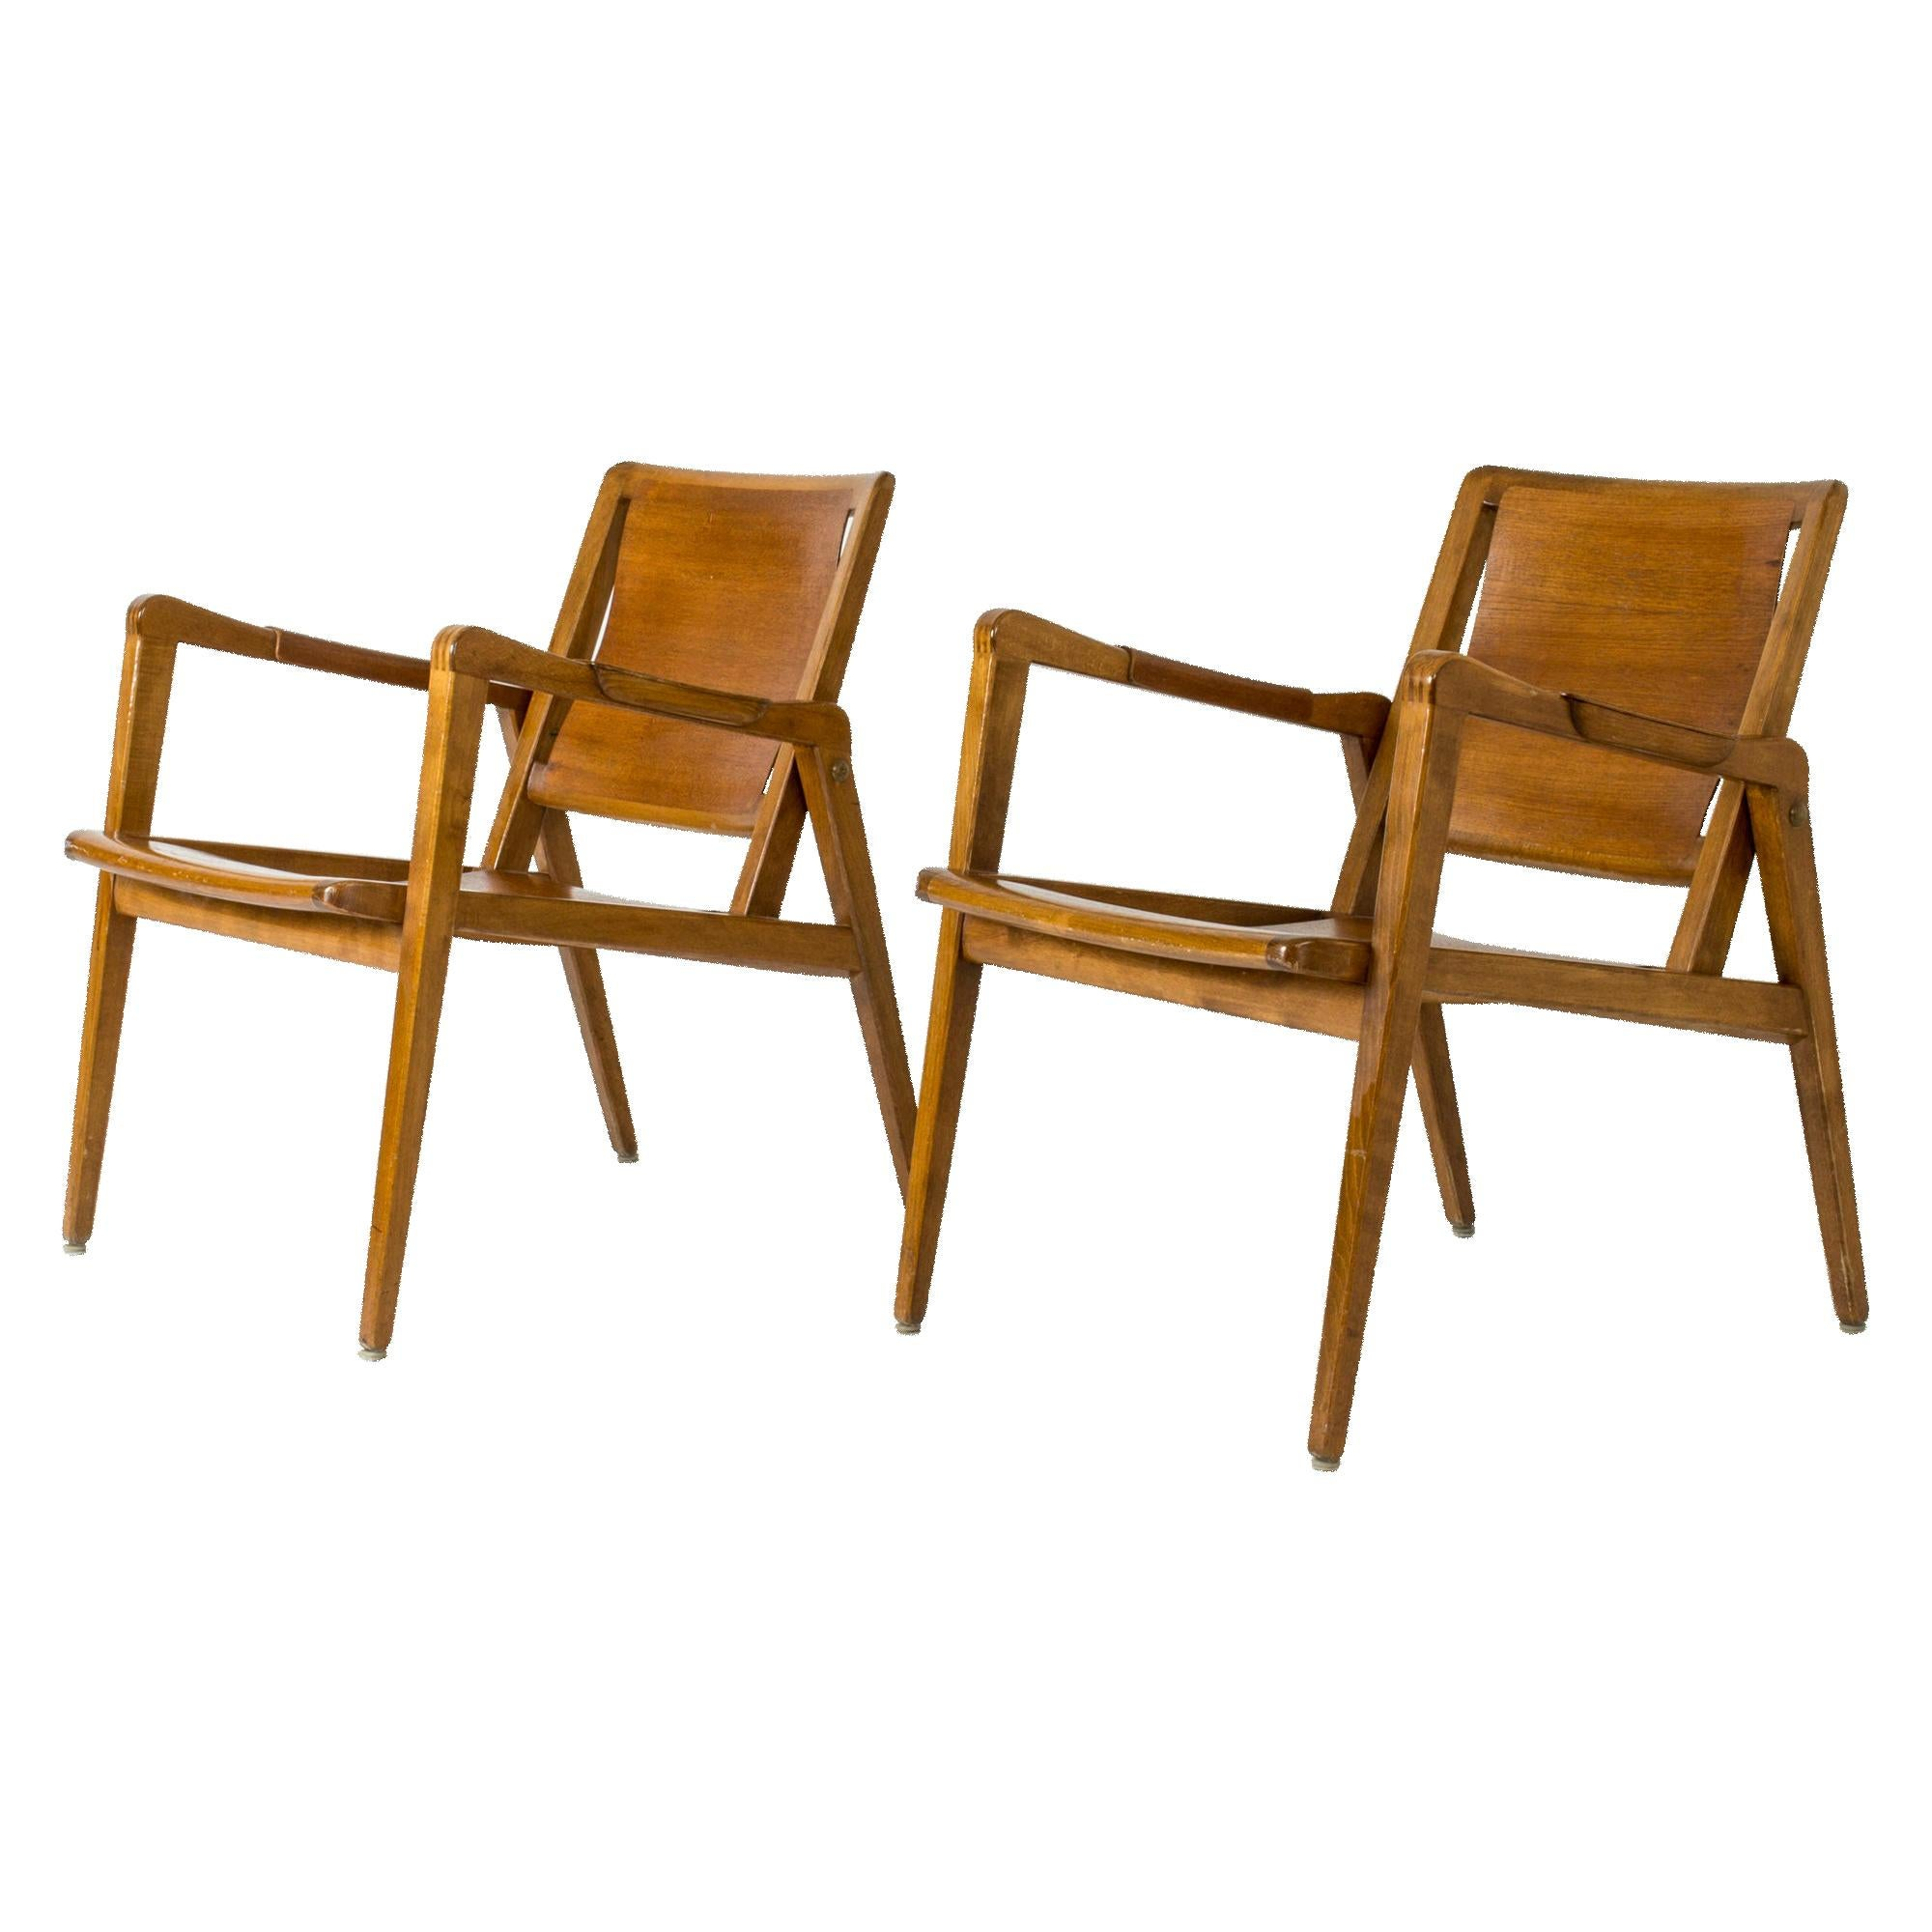 Pair of Armchairs by Axel Larsson for Bodafors, Sweden, 1940s.